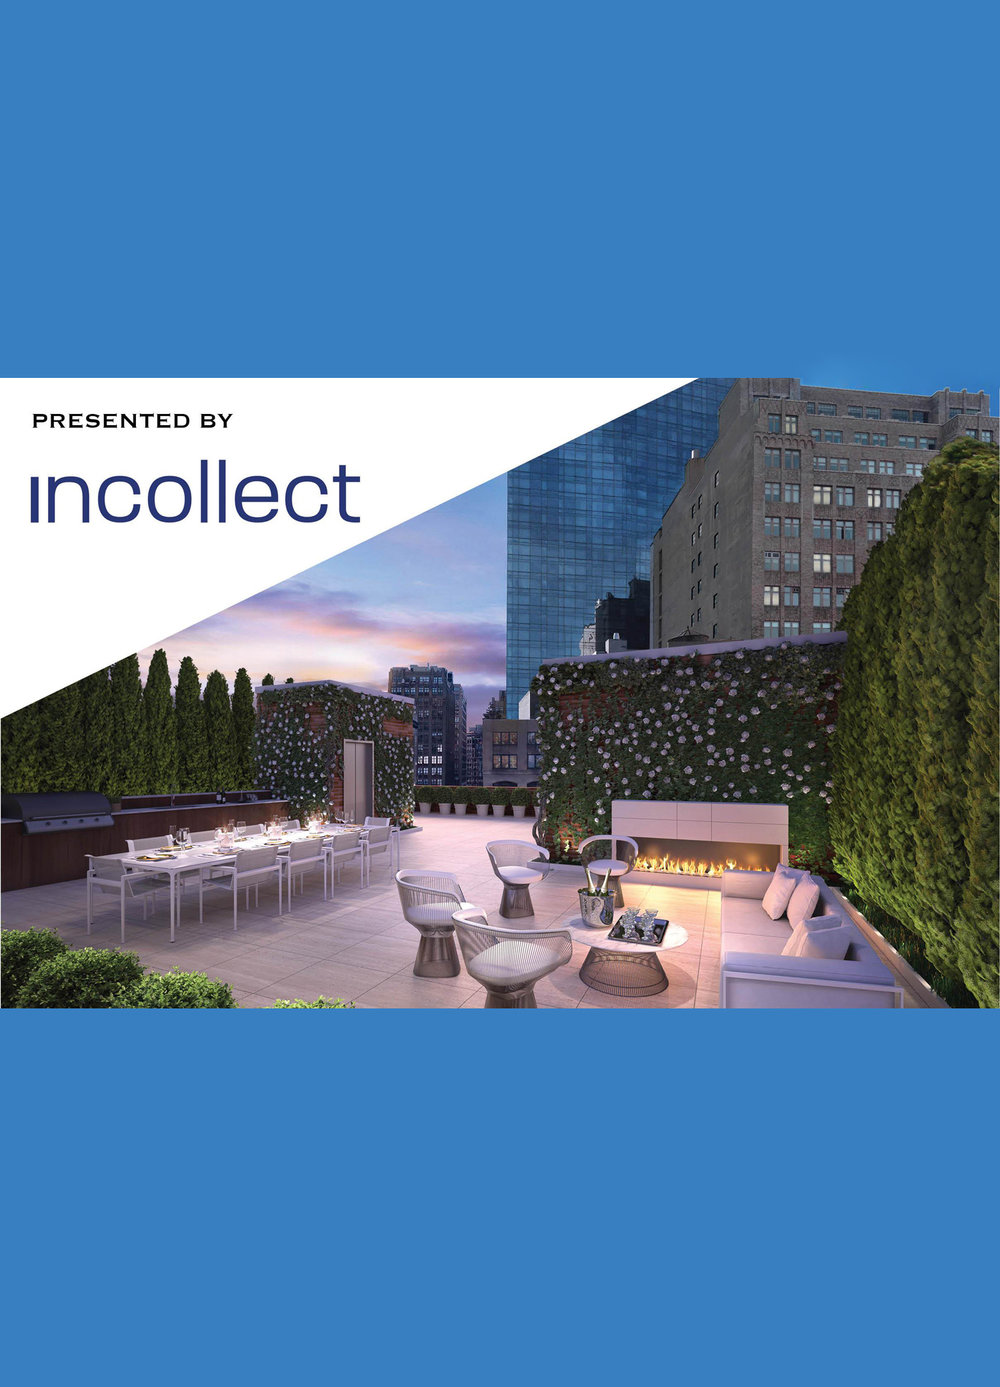 Incollect-Banner 4.jpg